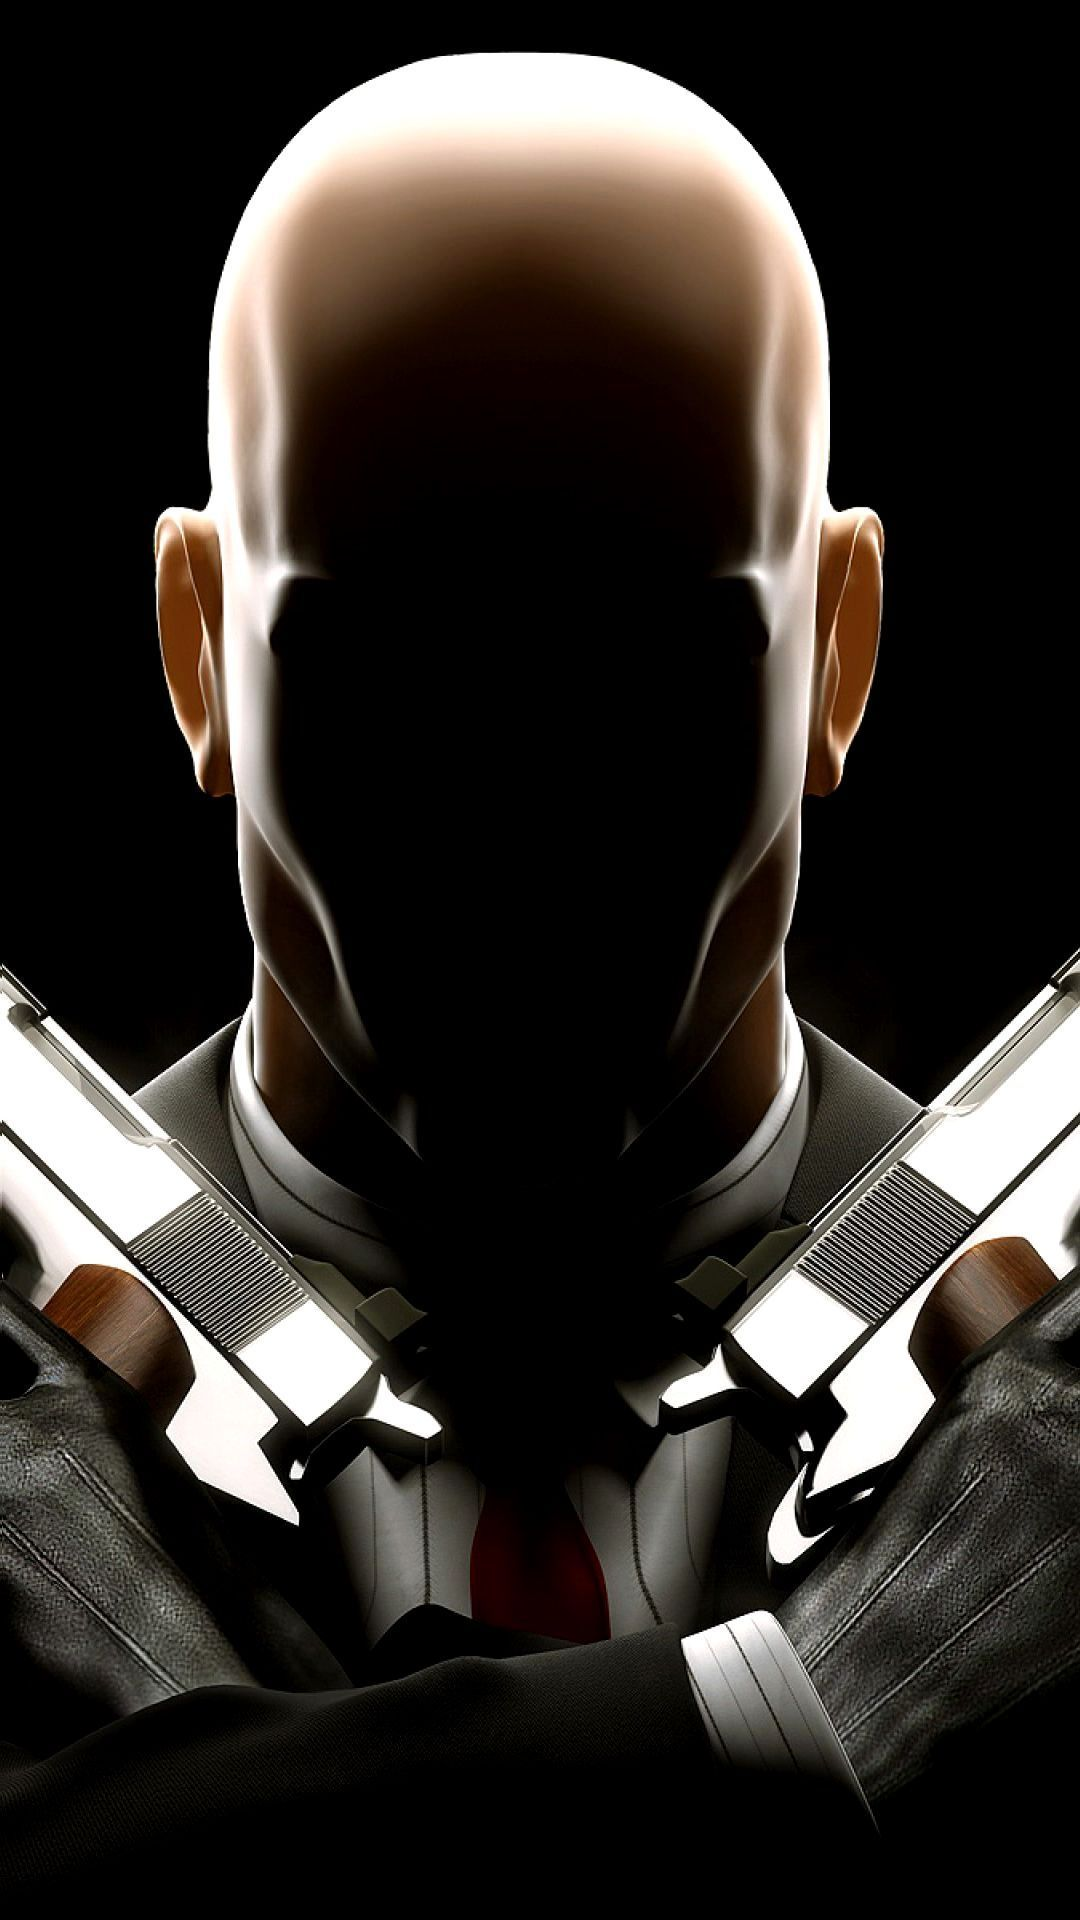 Hitman Wallpaper 4k For Mobile Gallery 4k Best Of Wallpaper 4k Gallery Hitman Mobile Wallpaper Hitman Phone Wallpaper Android Wallpaper